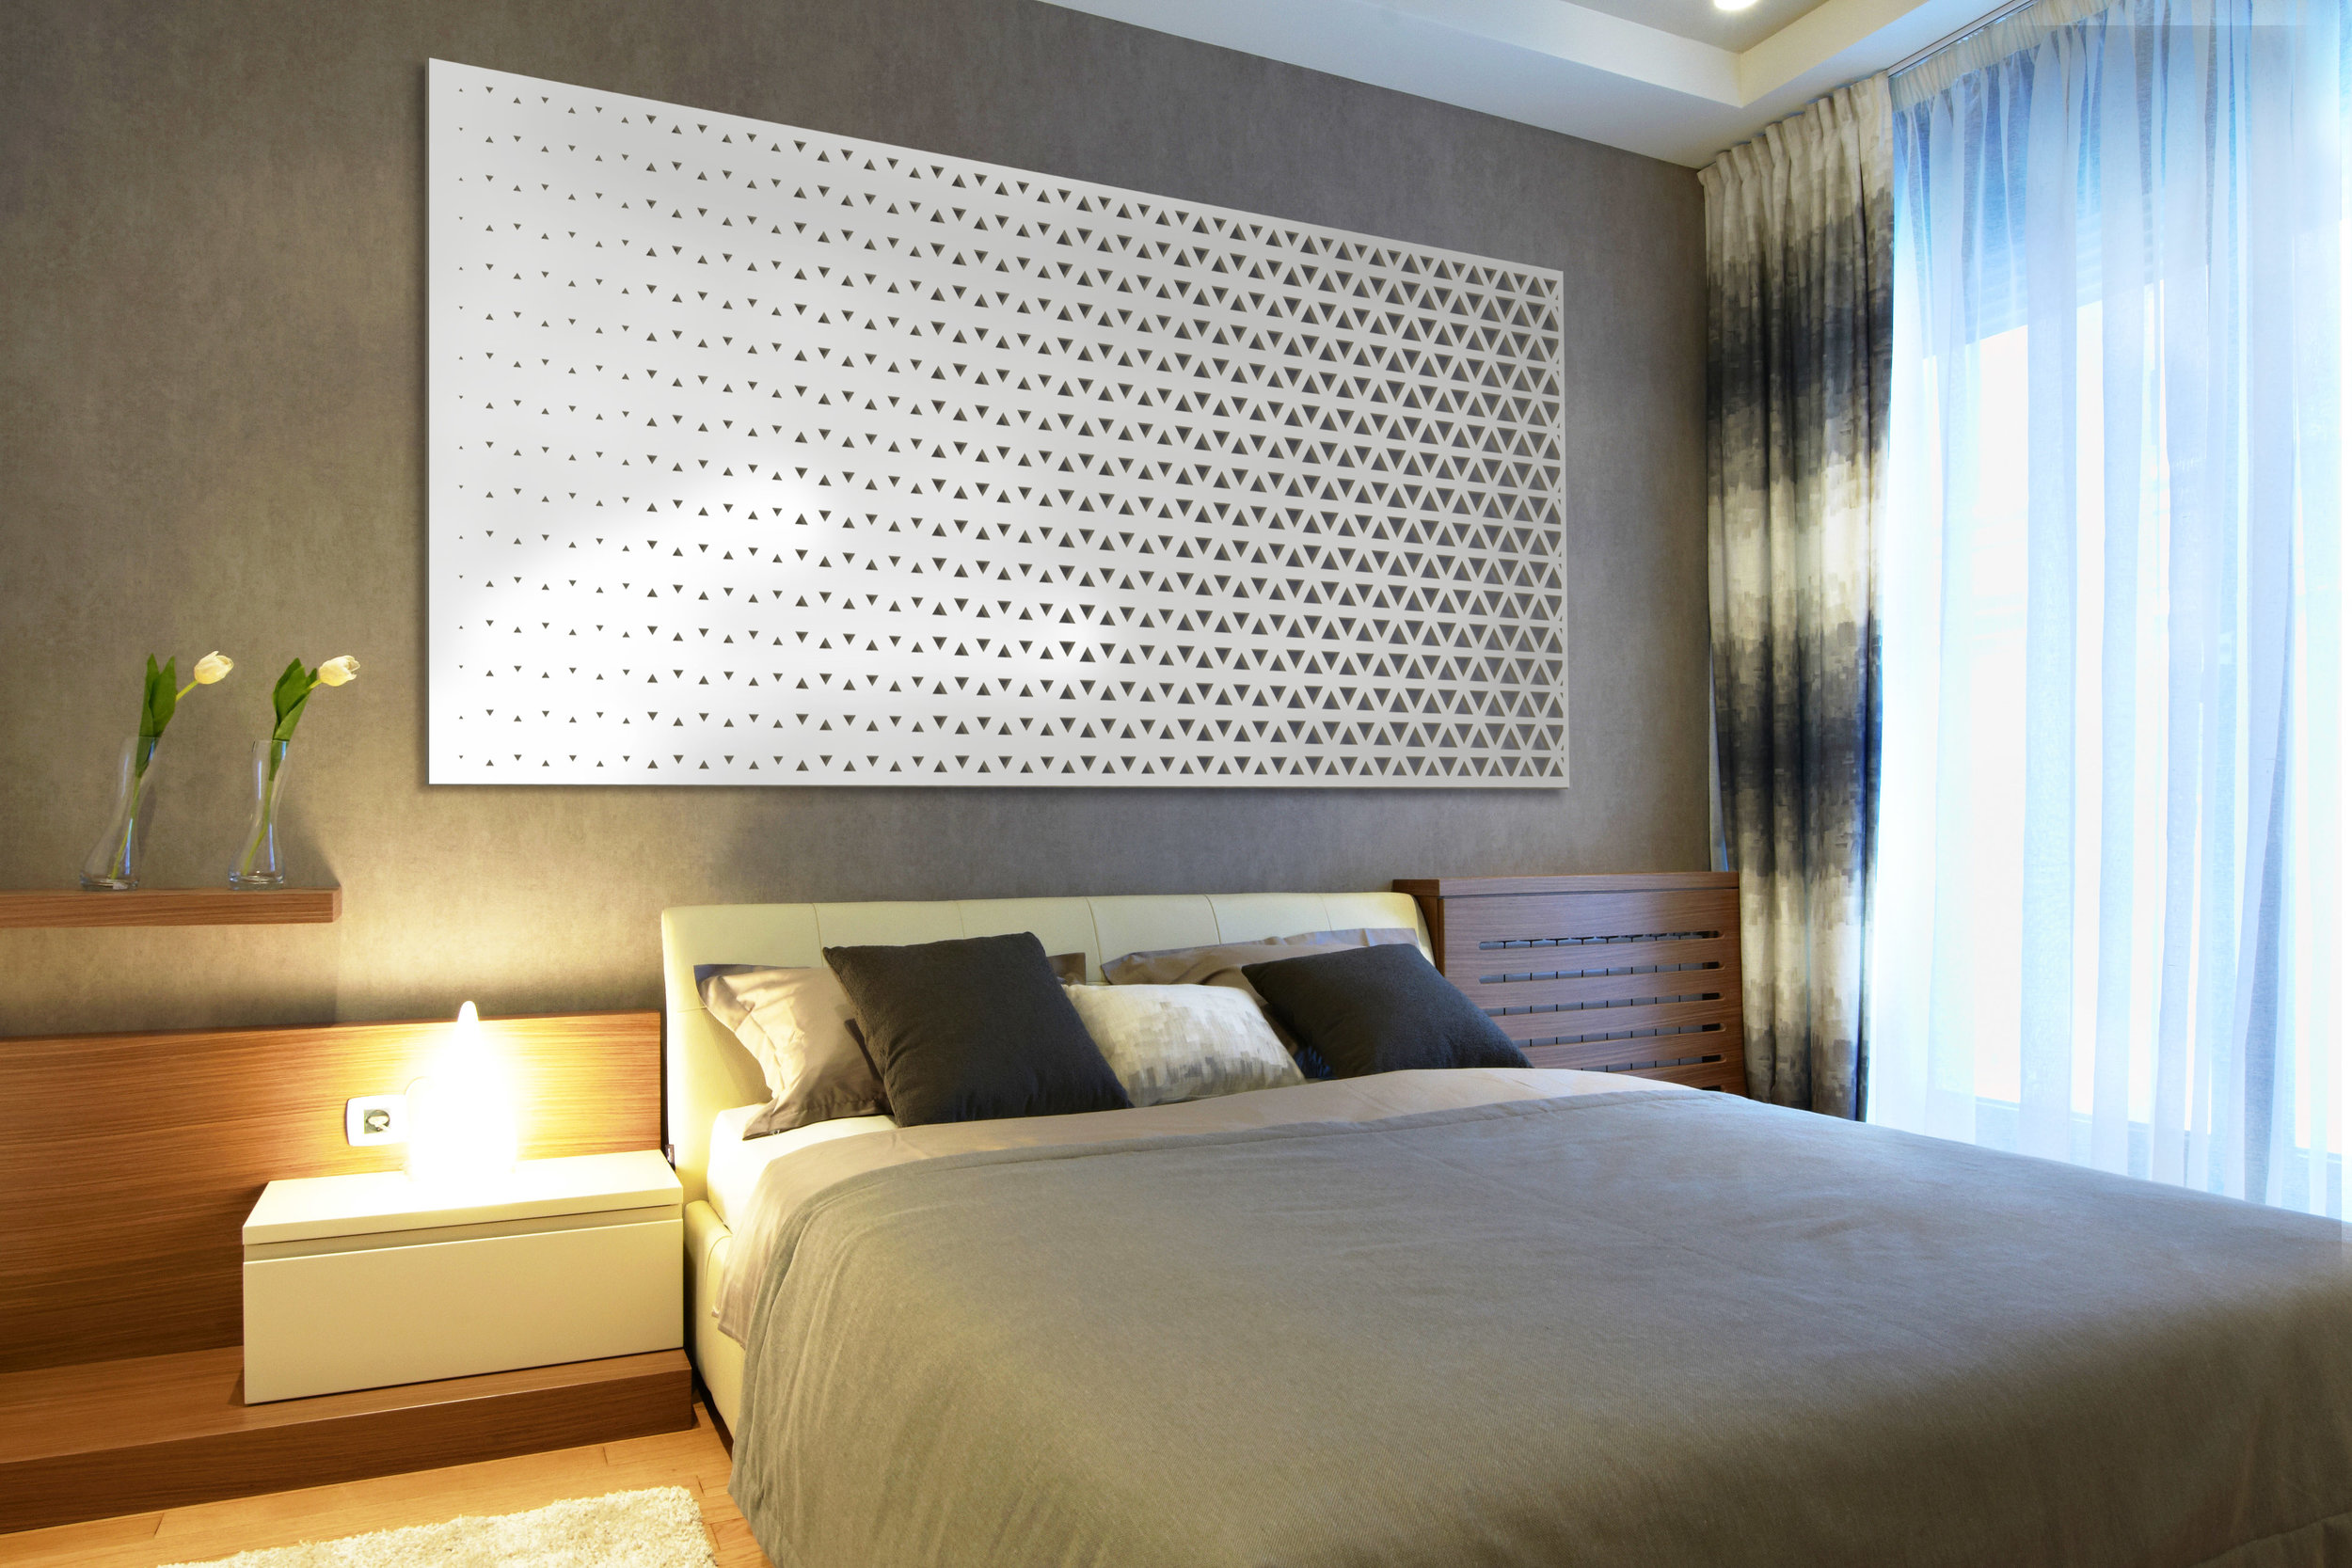 Installation Rendering C   Triangle Fade decorative hotel wall panel - painted